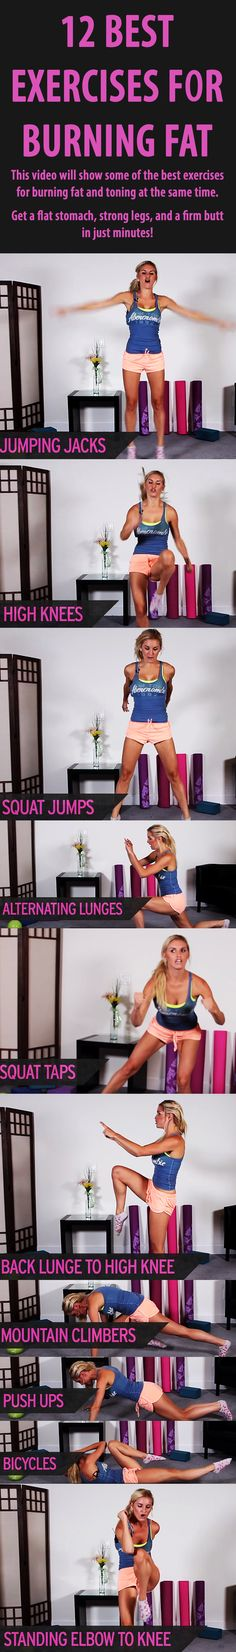 Calorie burning workout: 12 absolutely best exercises for BURNING FAT.  | Posted By: NewHowtoLoseBellyFat.com